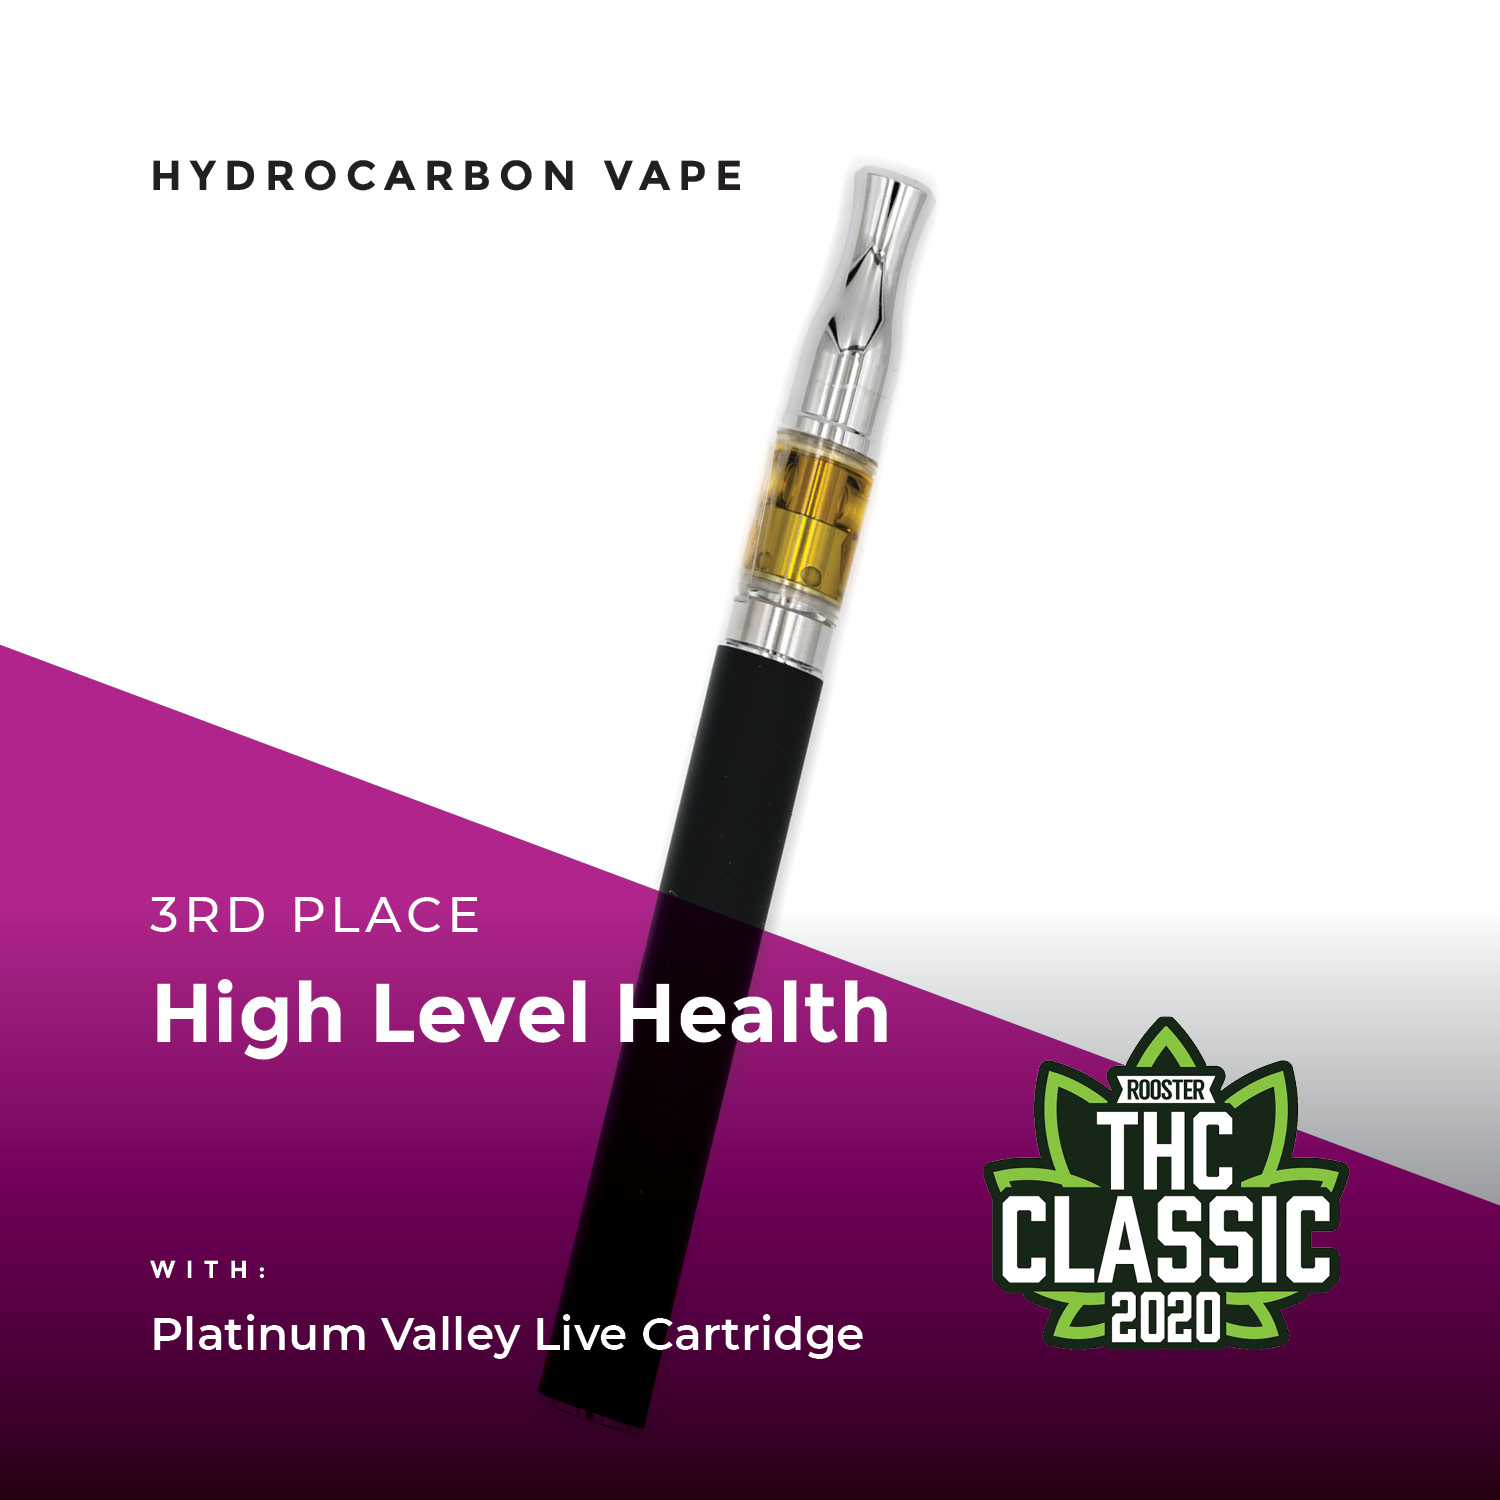 Best Colorado Cannabis Products: Hydrocarbon Vape